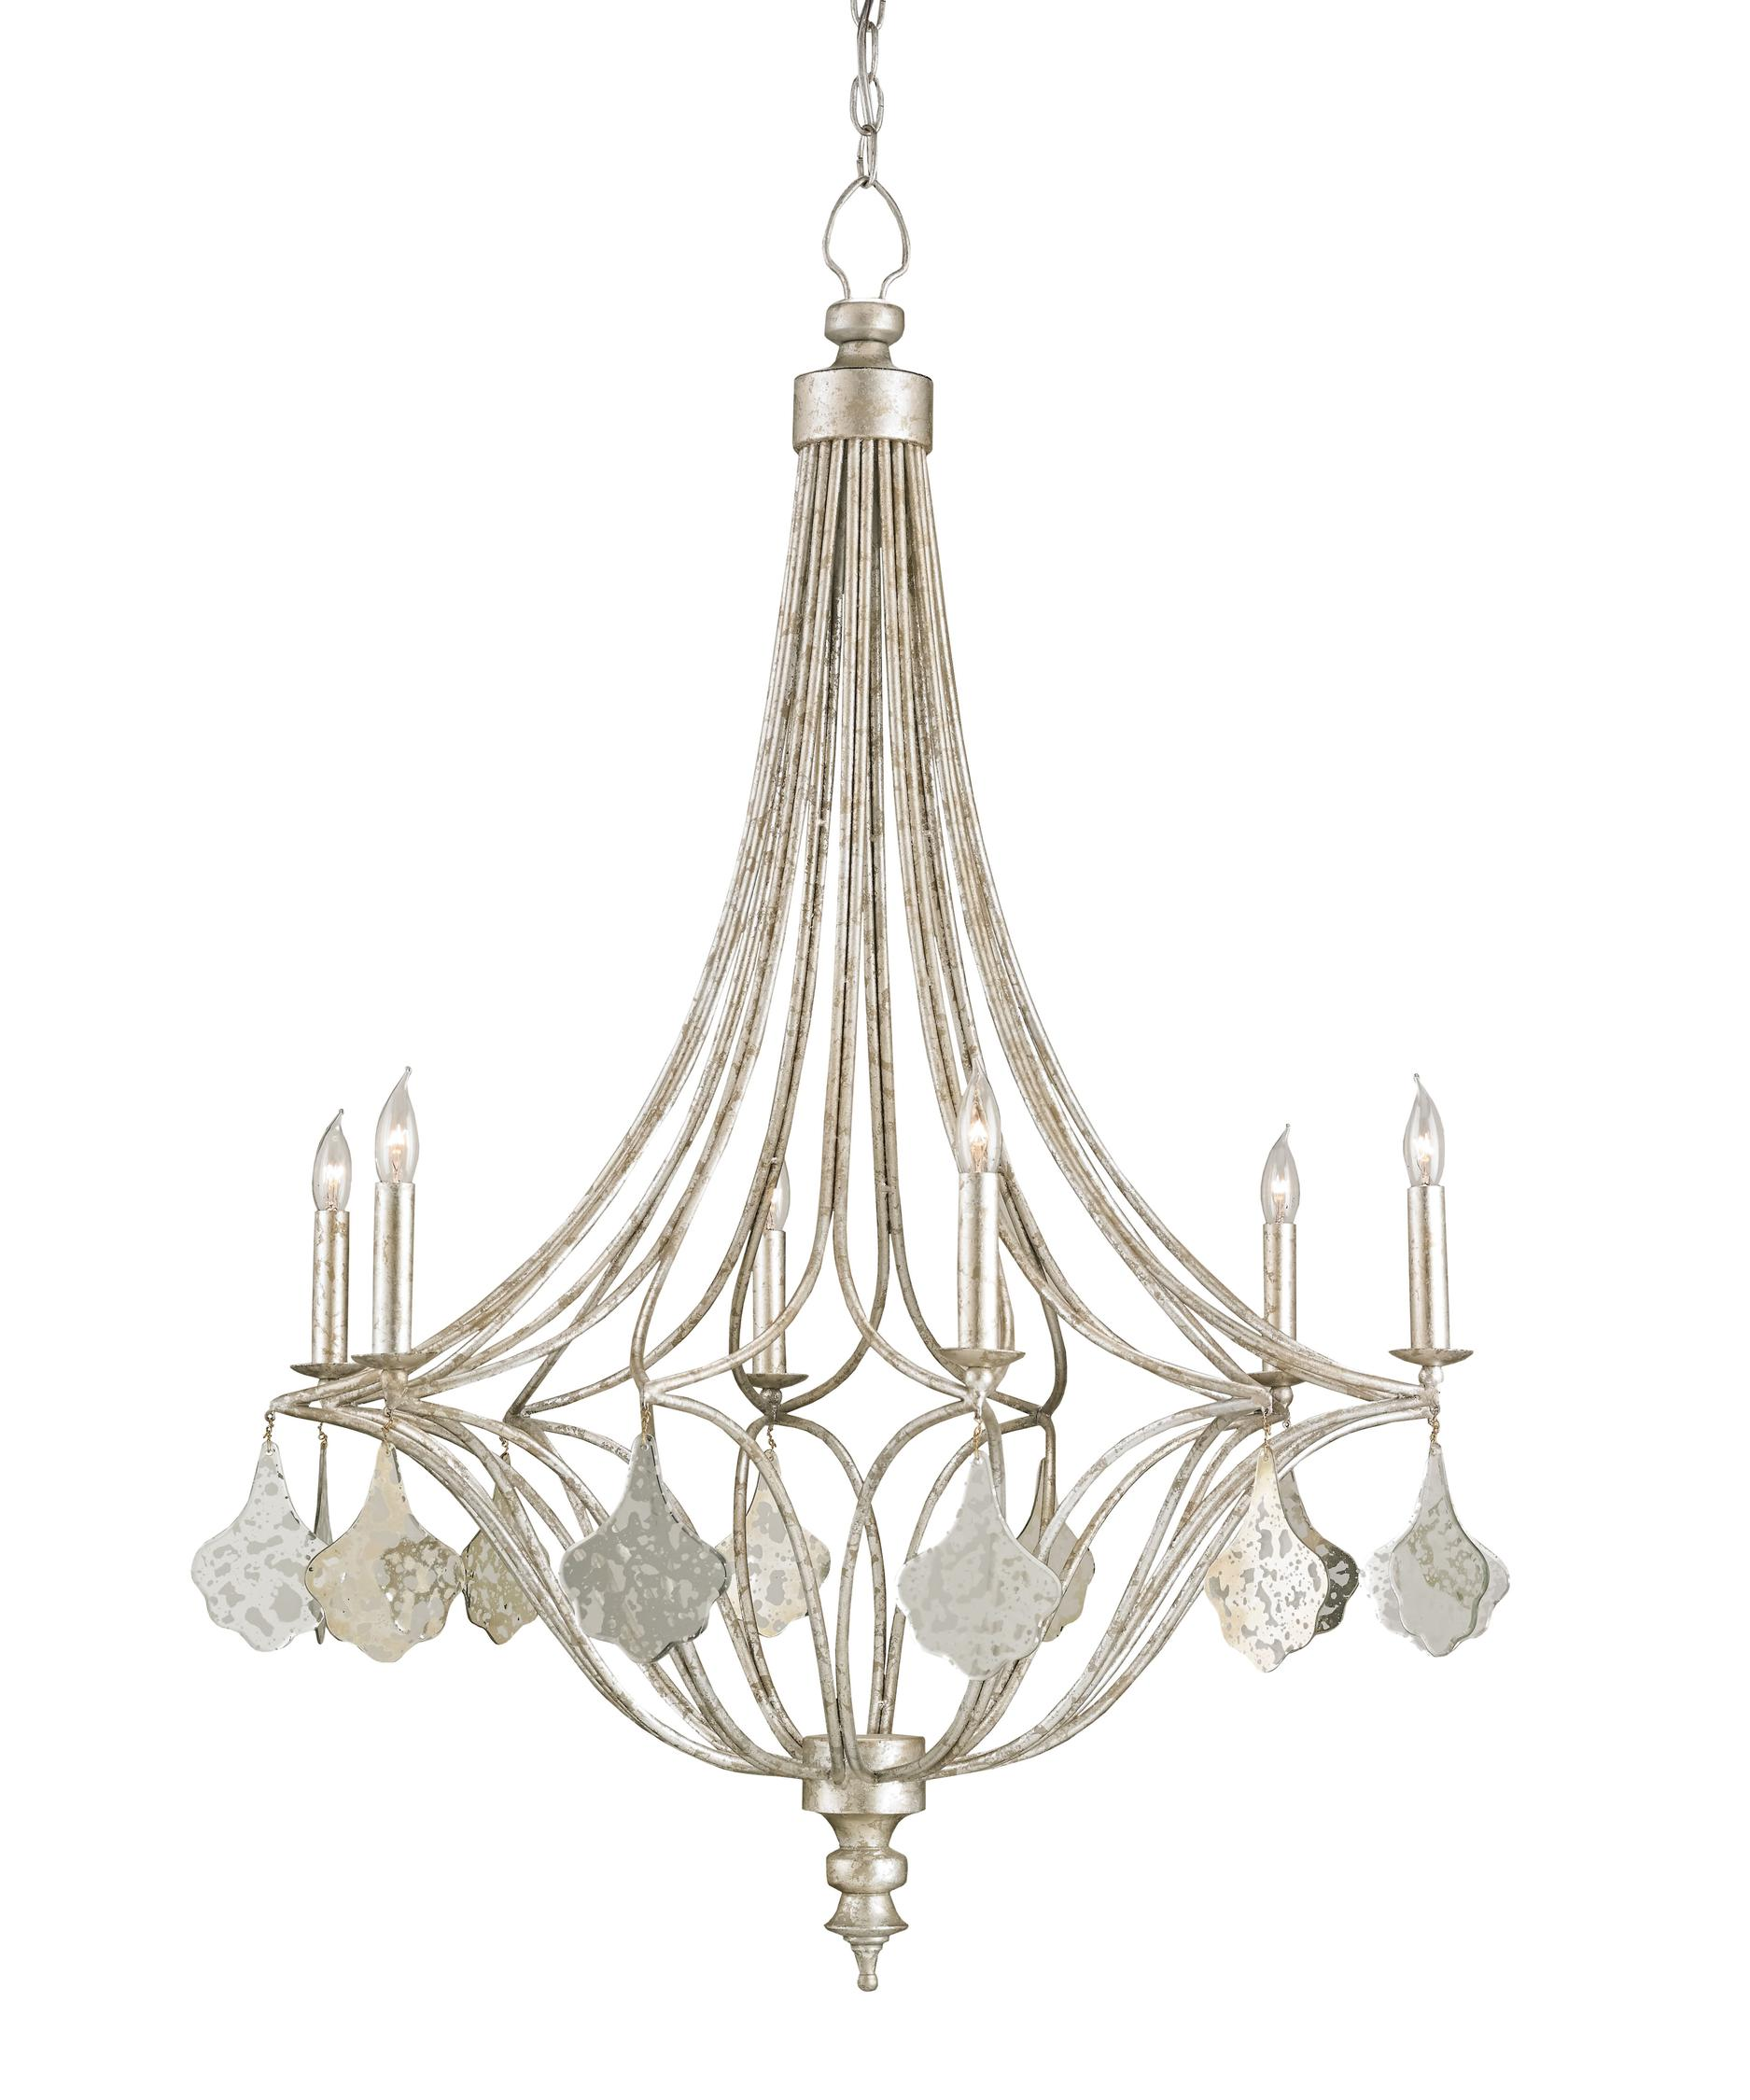 Currey and Company Lavinia 30 Inch Wide 6 Light Chandelier – Currey and Company Lighting Chandeliers